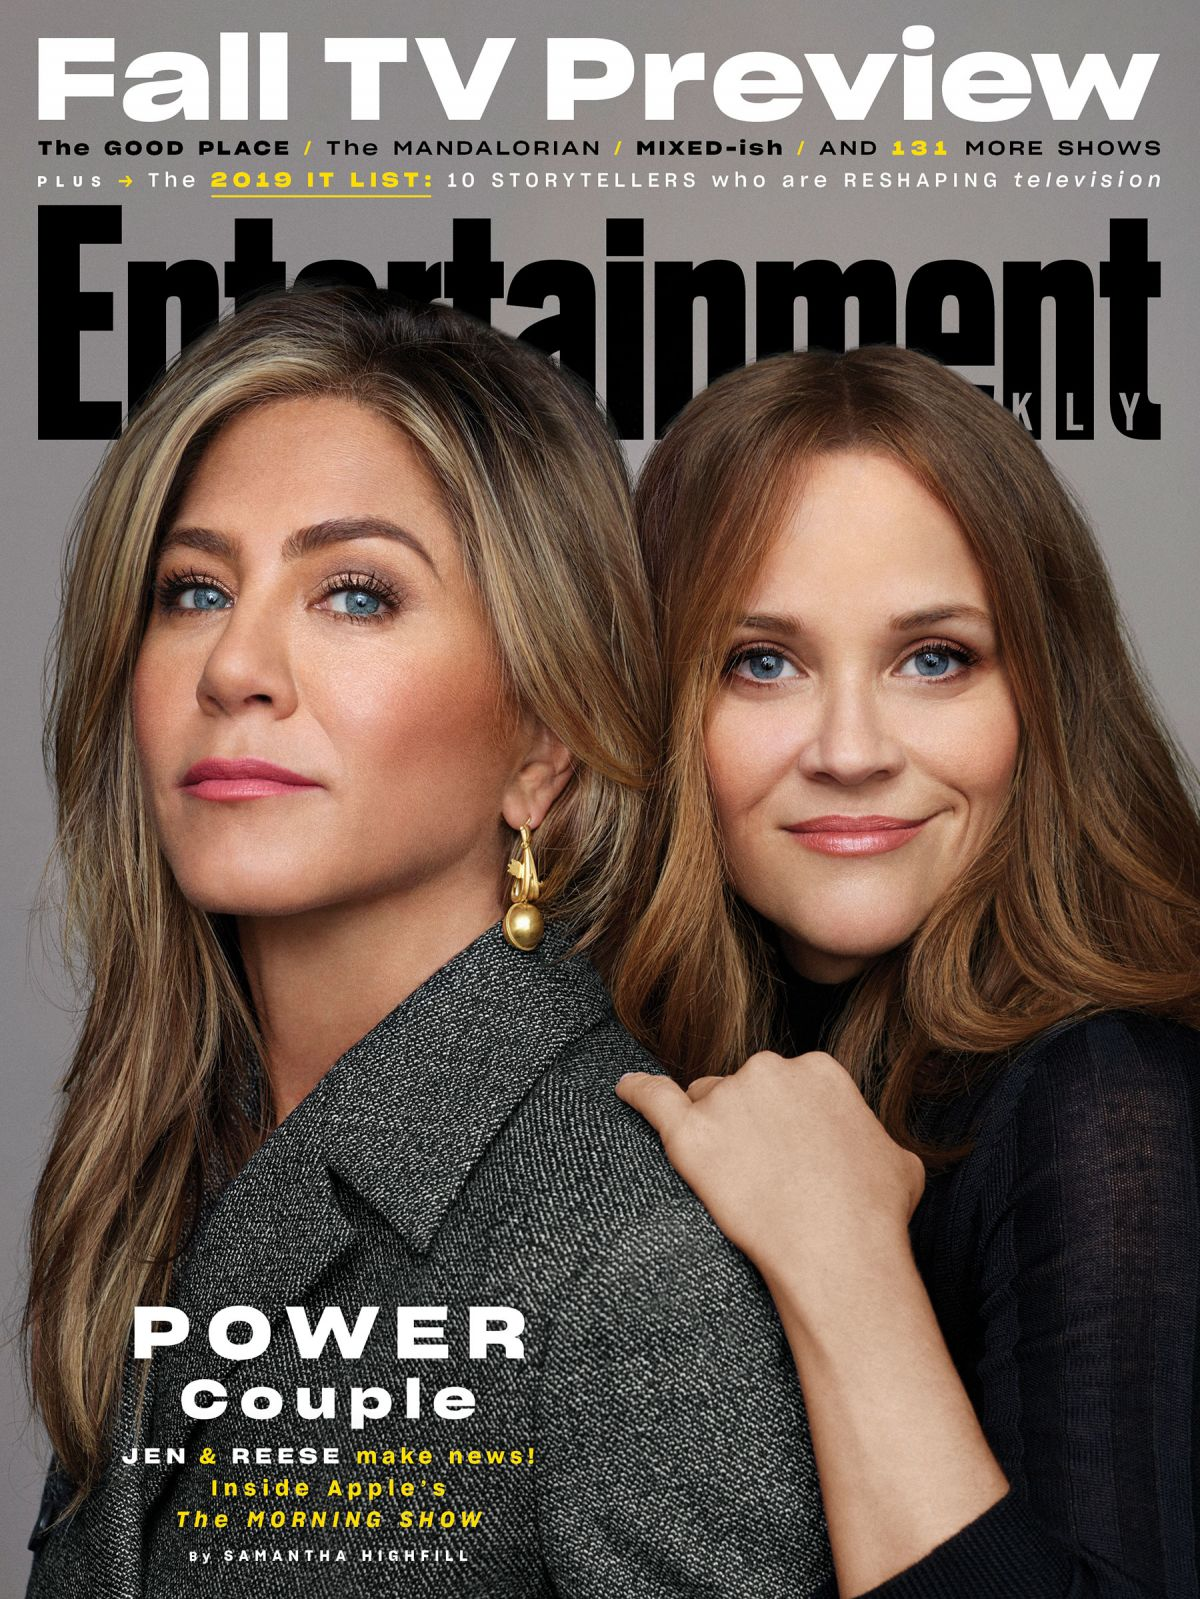 Jennifer Aniston And Reese Witherspoon On The Cover Of